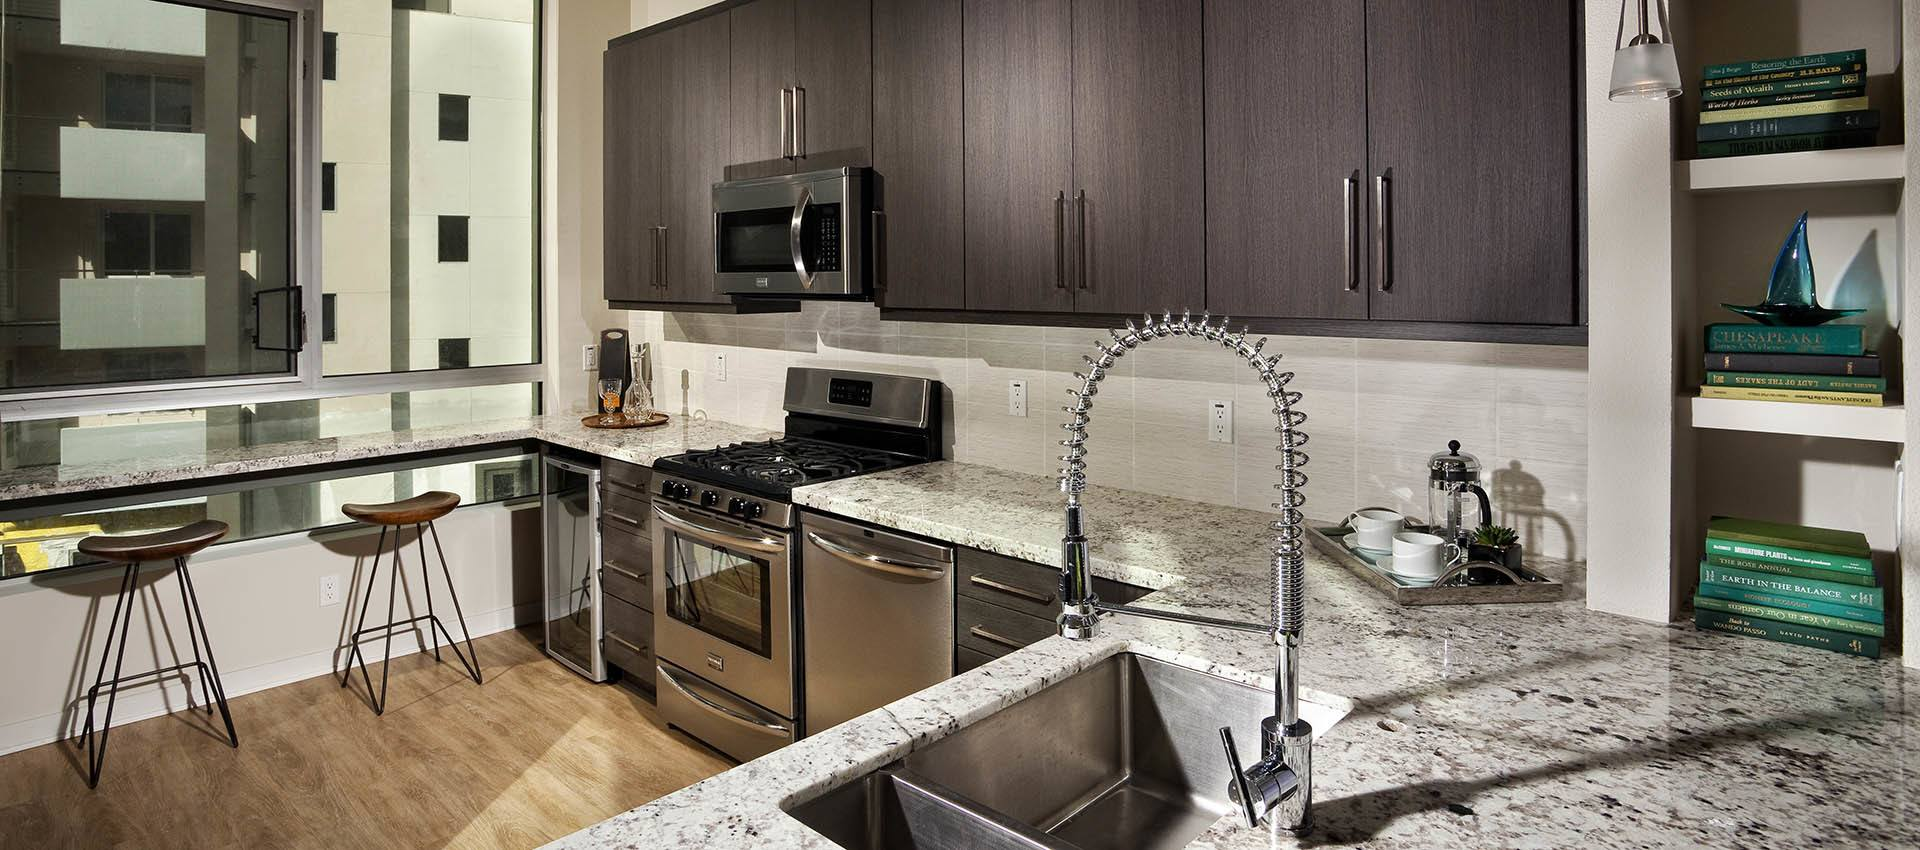 Luxury renovated kitchen rental loft at Brio, Glendale, CA